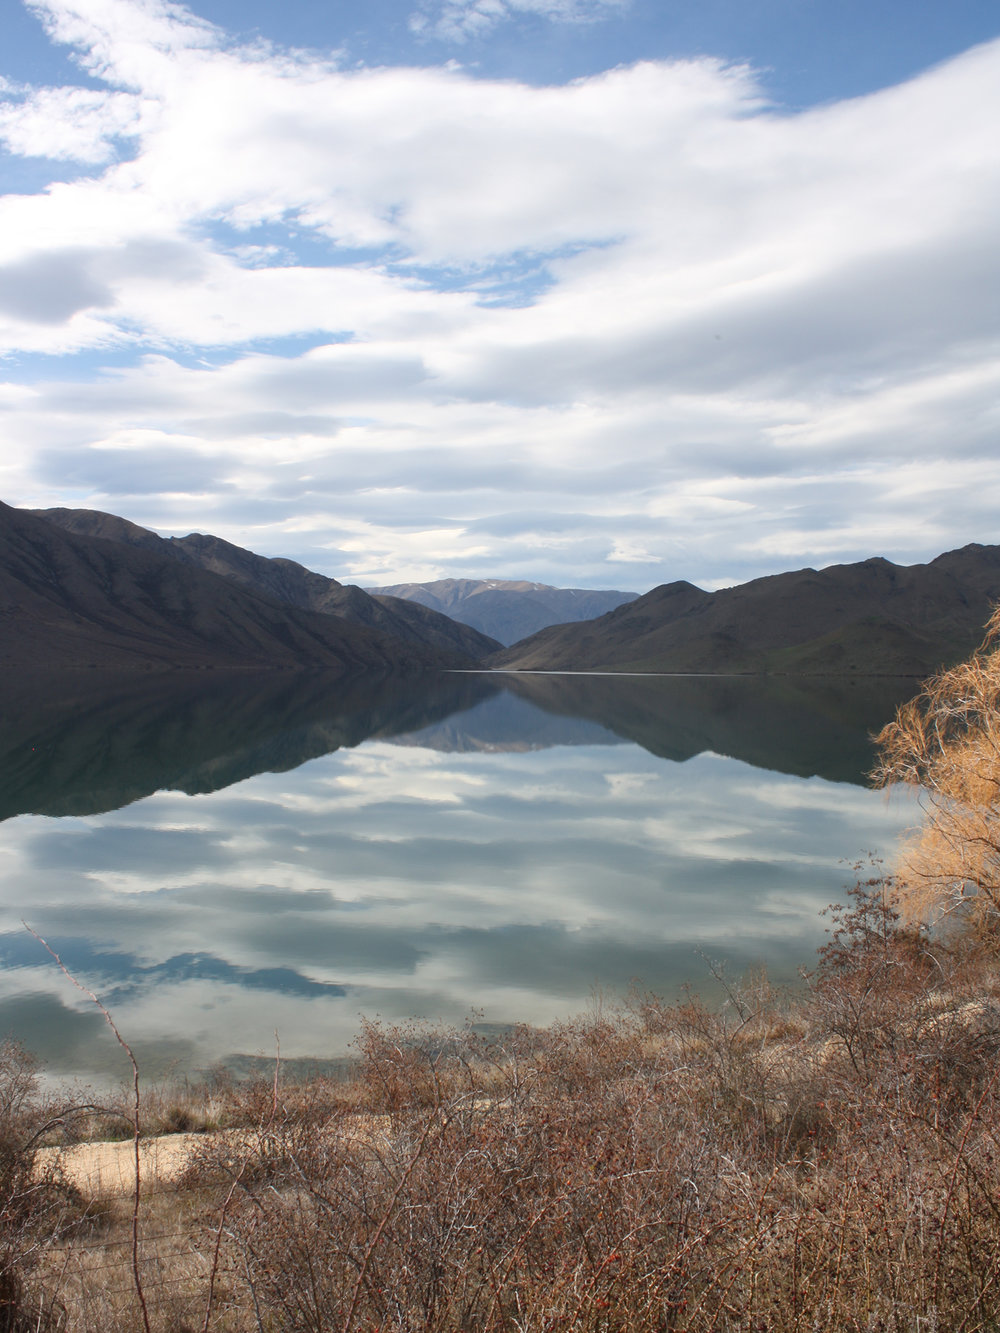 Mirrored landscape. Somewhere between Oamaru and Queenstown on our South Island road trip, New Zealand